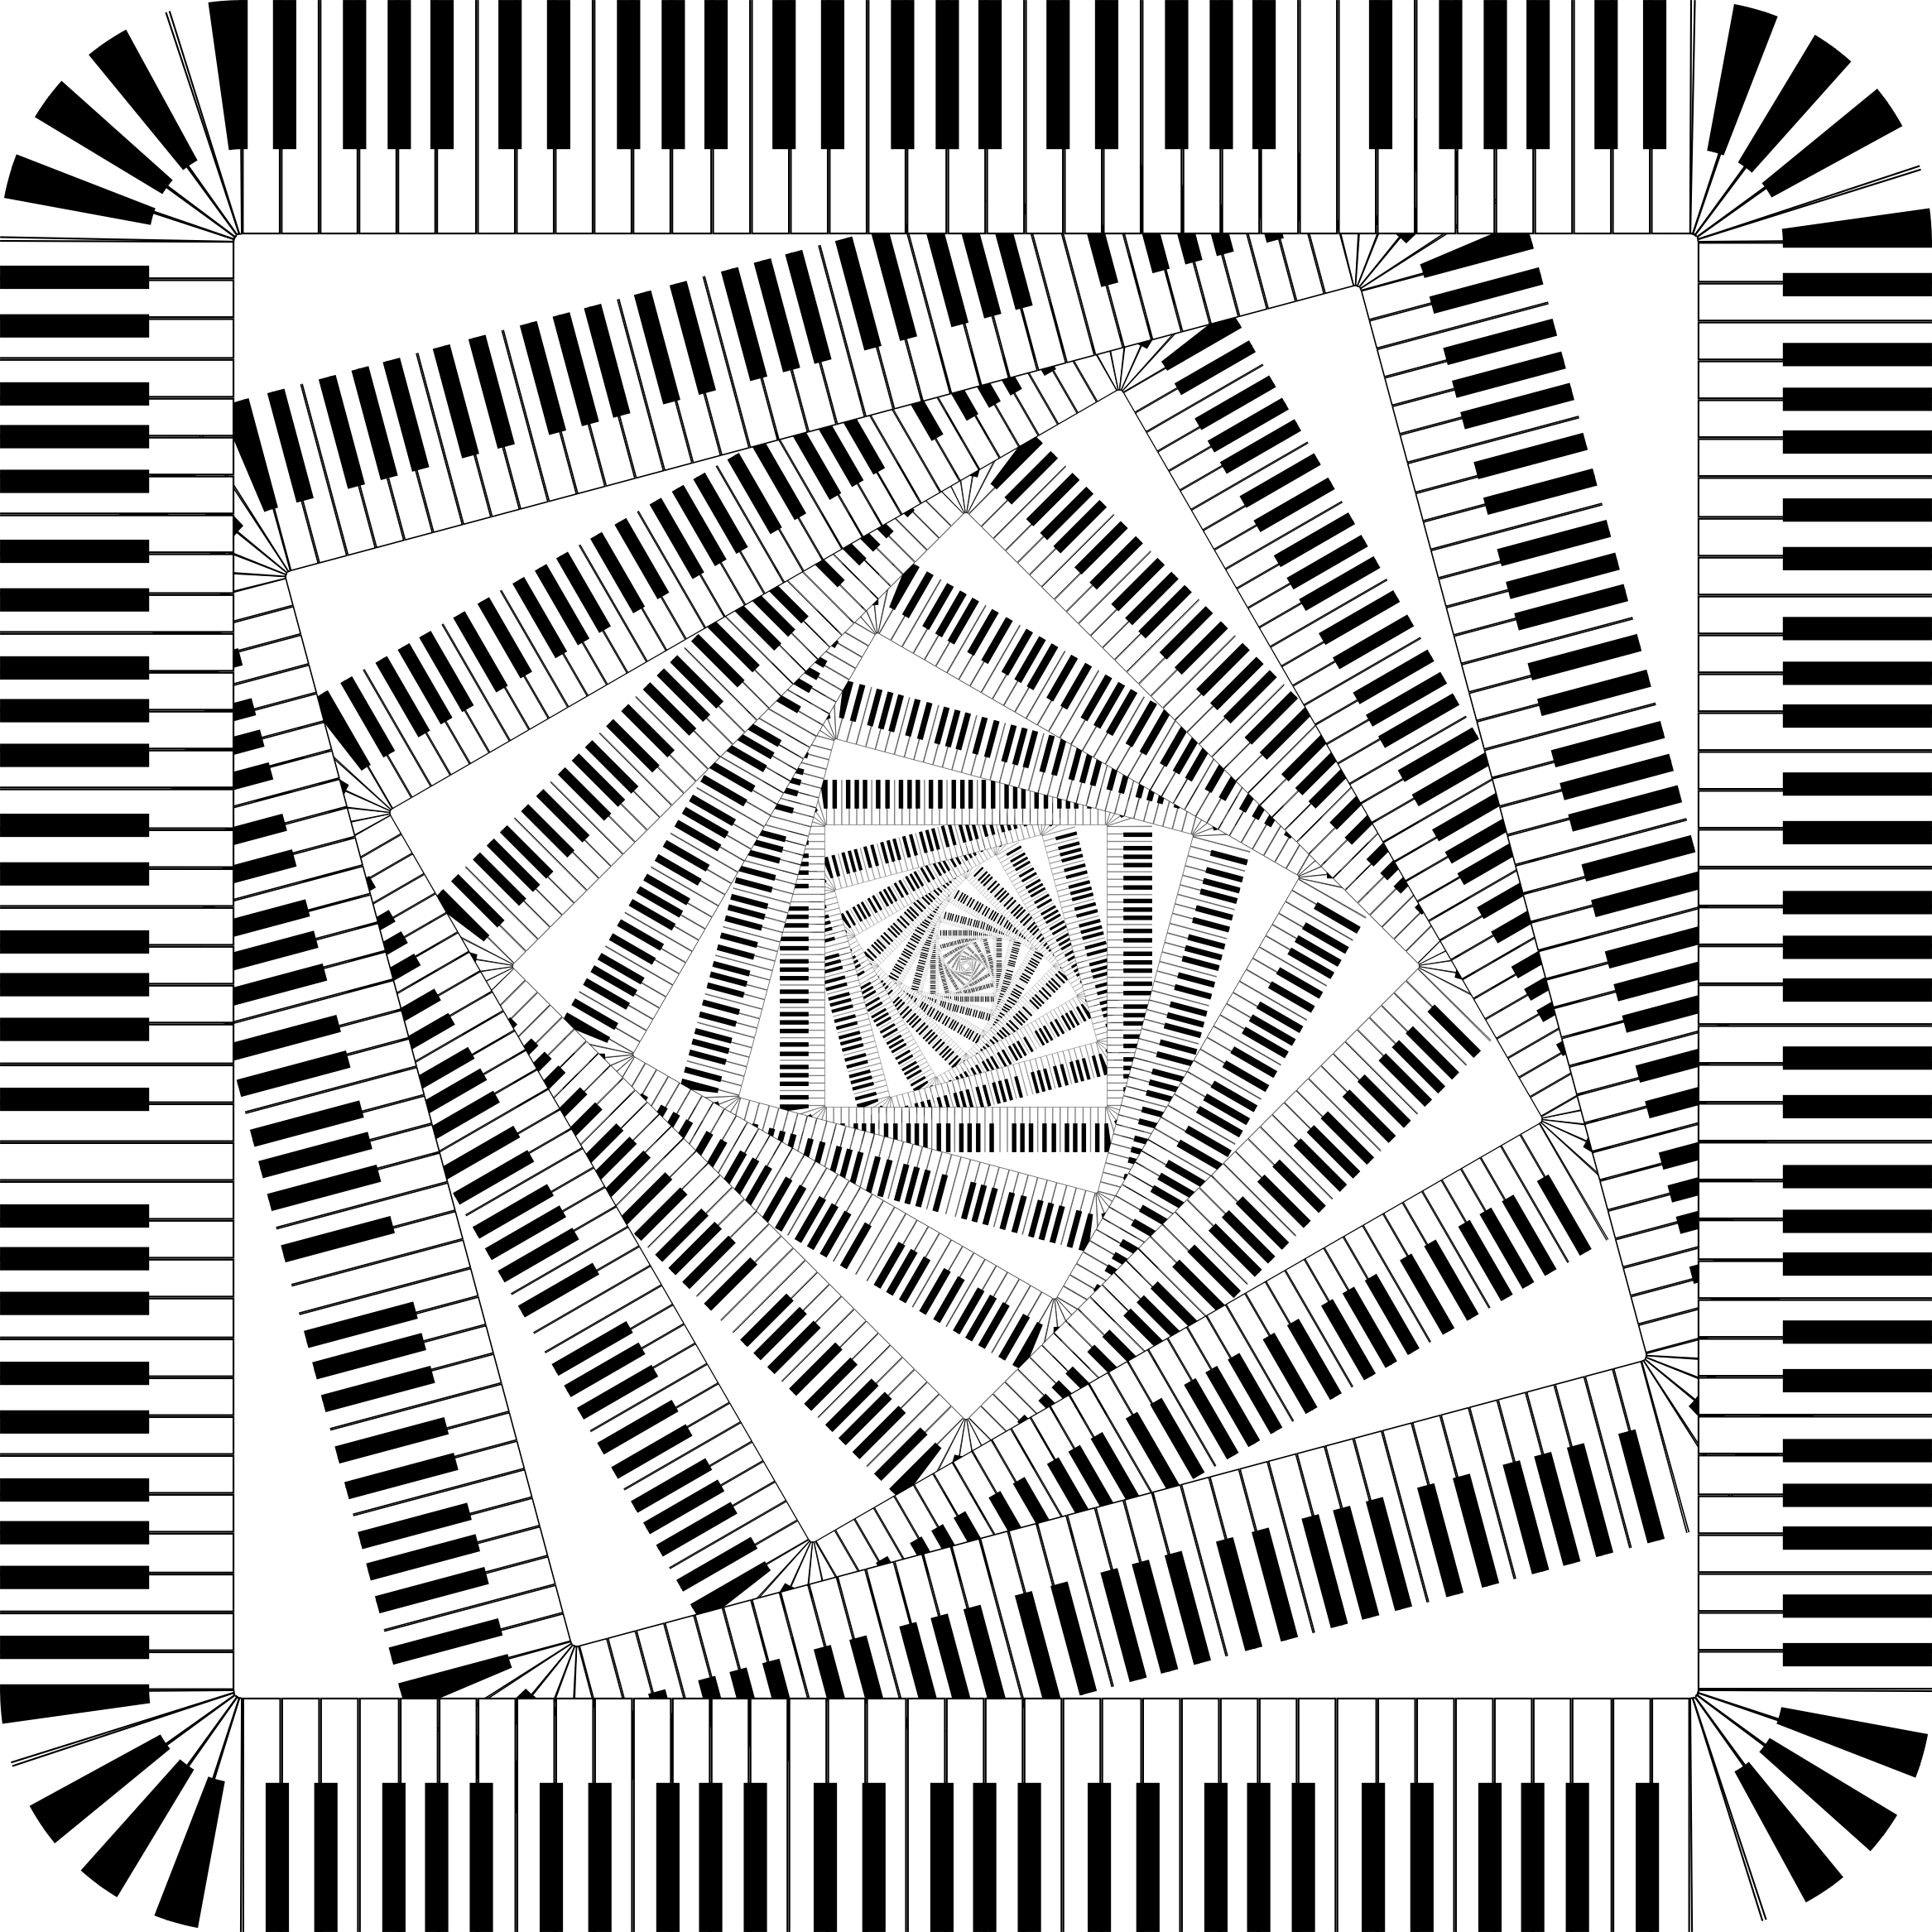 Piano clipart swirl. Keys rounded square vortex